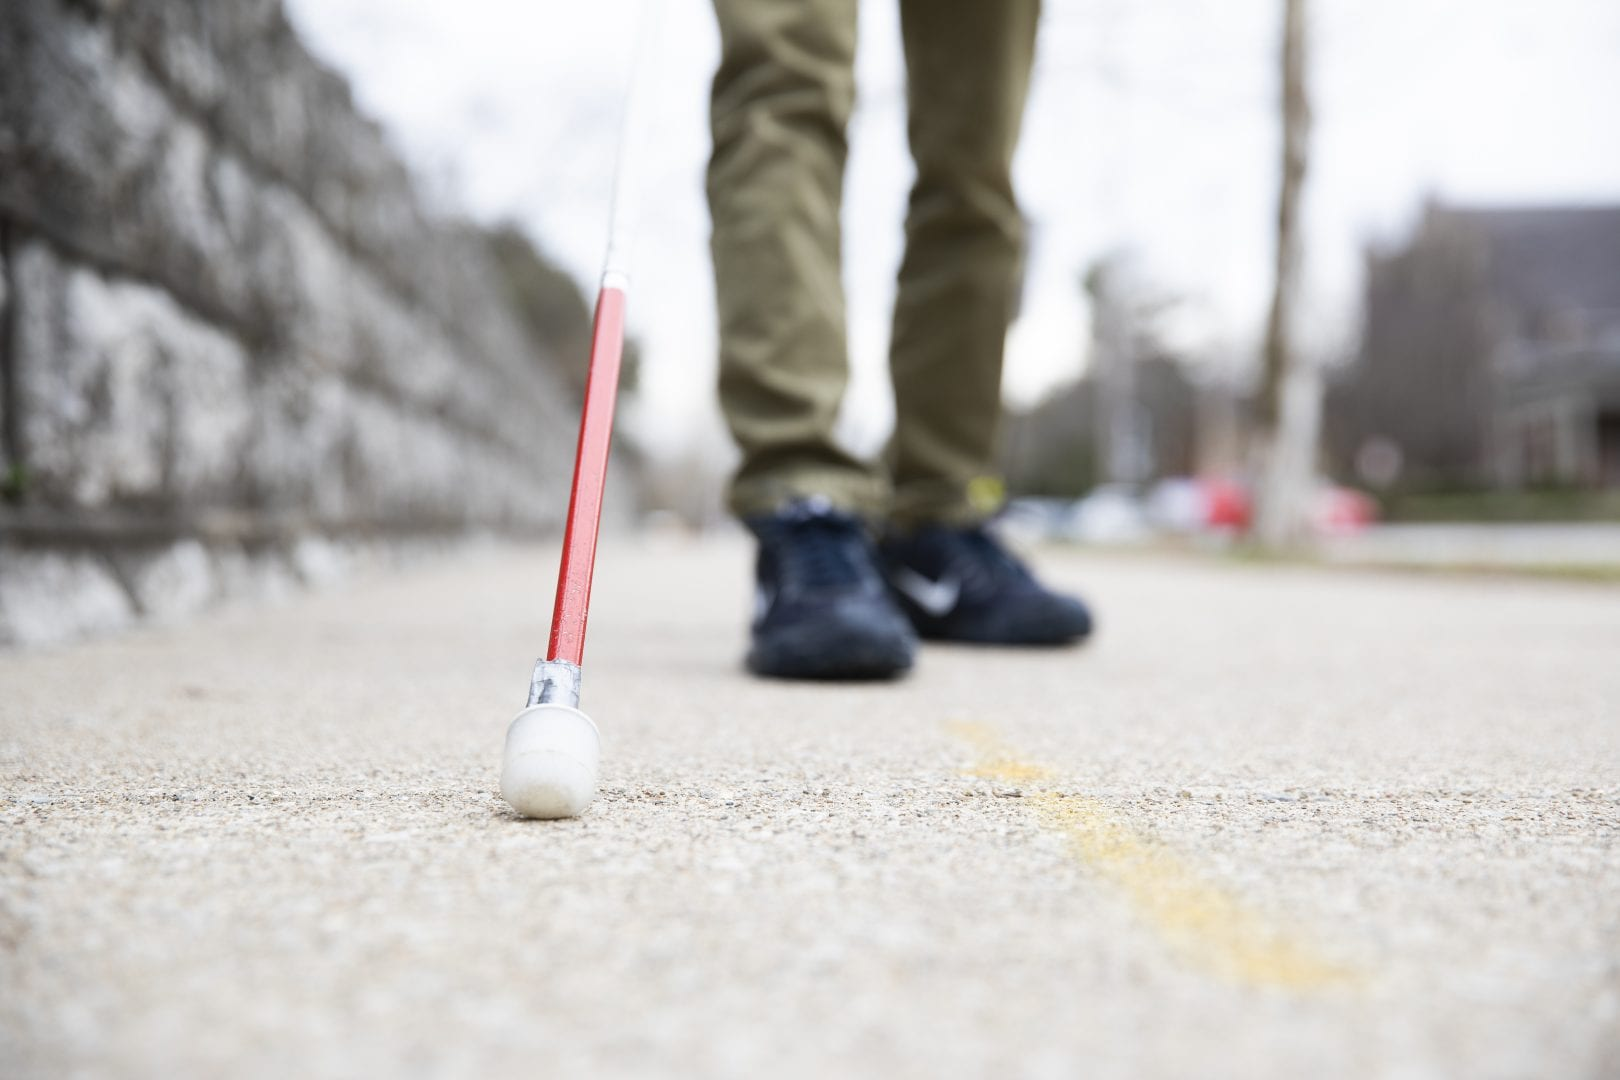 close up of a white cane with a red tip on concrete, sneakers in the background